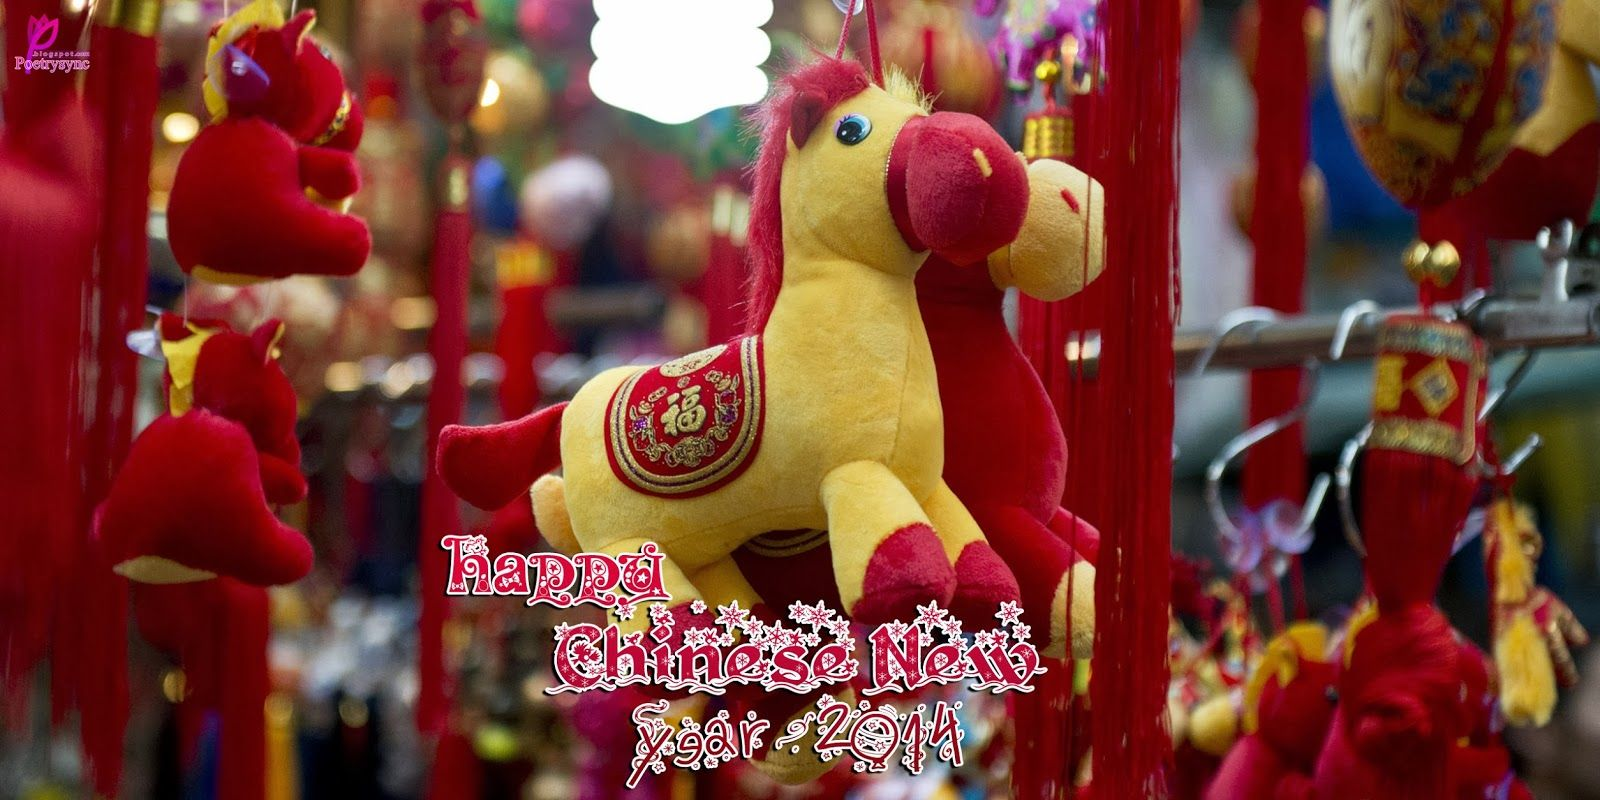 New year 2014 in china happy chinese new year wishes and greetings new year 2014 in china happy chinese new year wishes and greetings card picture happy lunar kristyandbryce Image collections